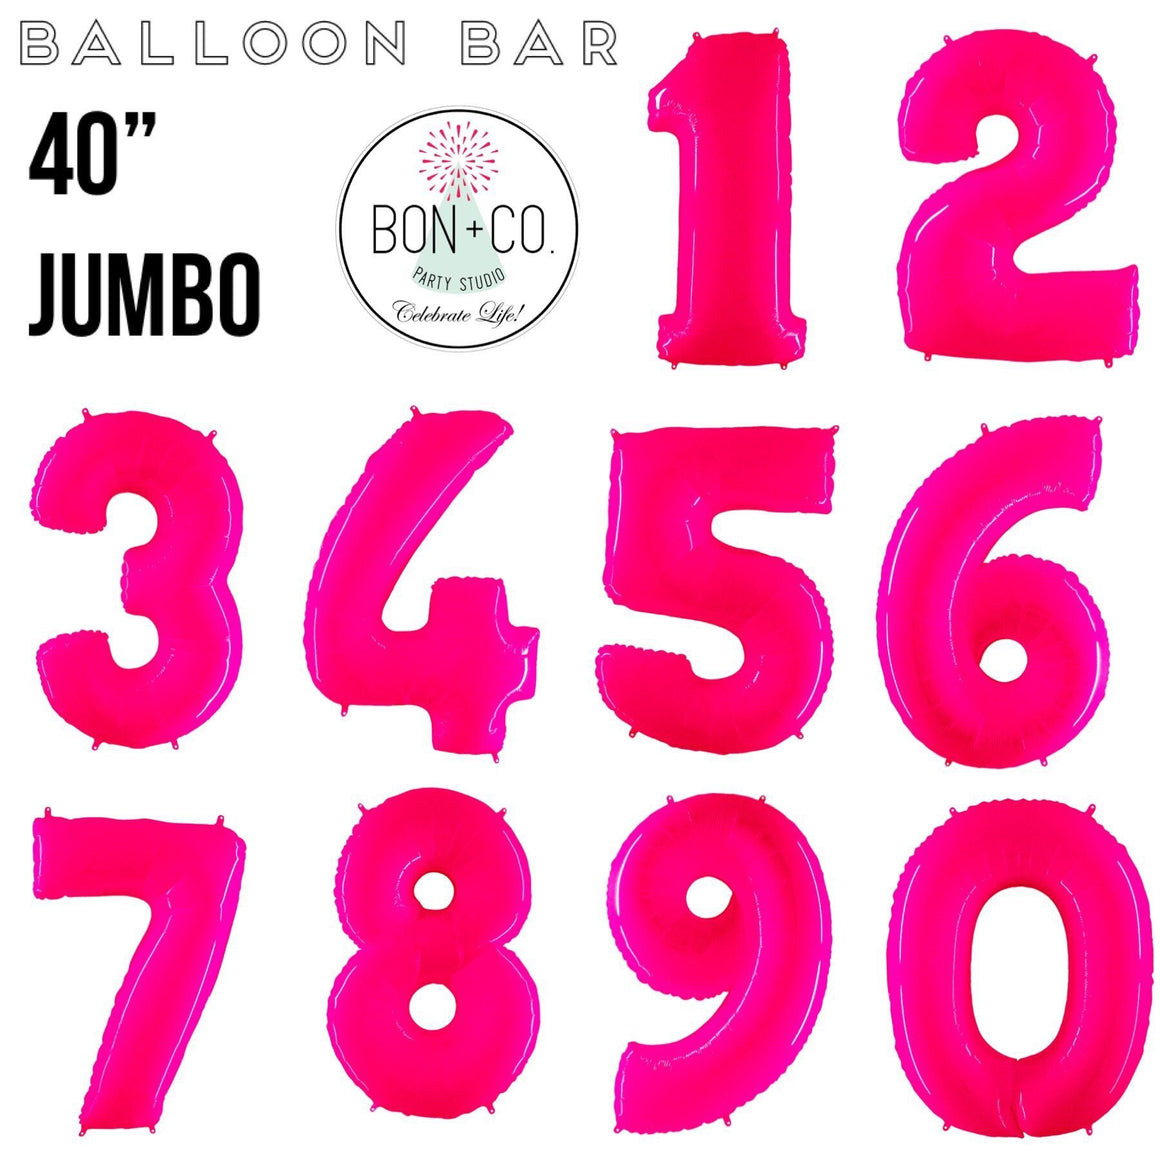 "BALLOON BAR - 40"" JUMBO NUMBER BRIGHT PINK, Balloons, bargain balloons - Bon + Co. Party Studio"